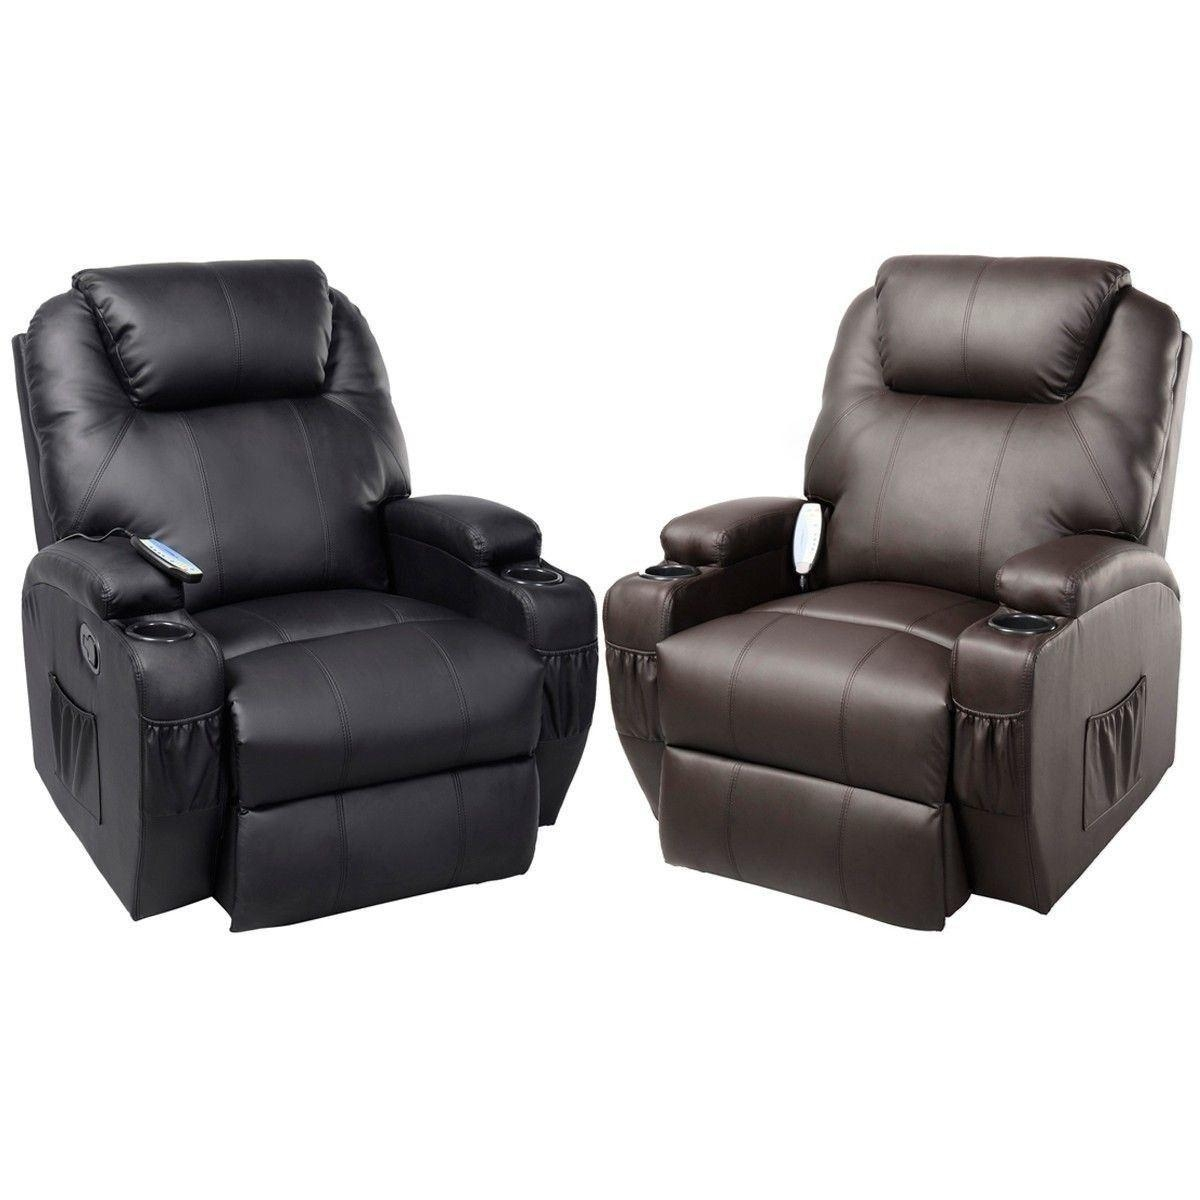 Sectional Sofas Kijiji Kingston: 20 Best Sofa Chair Recliner